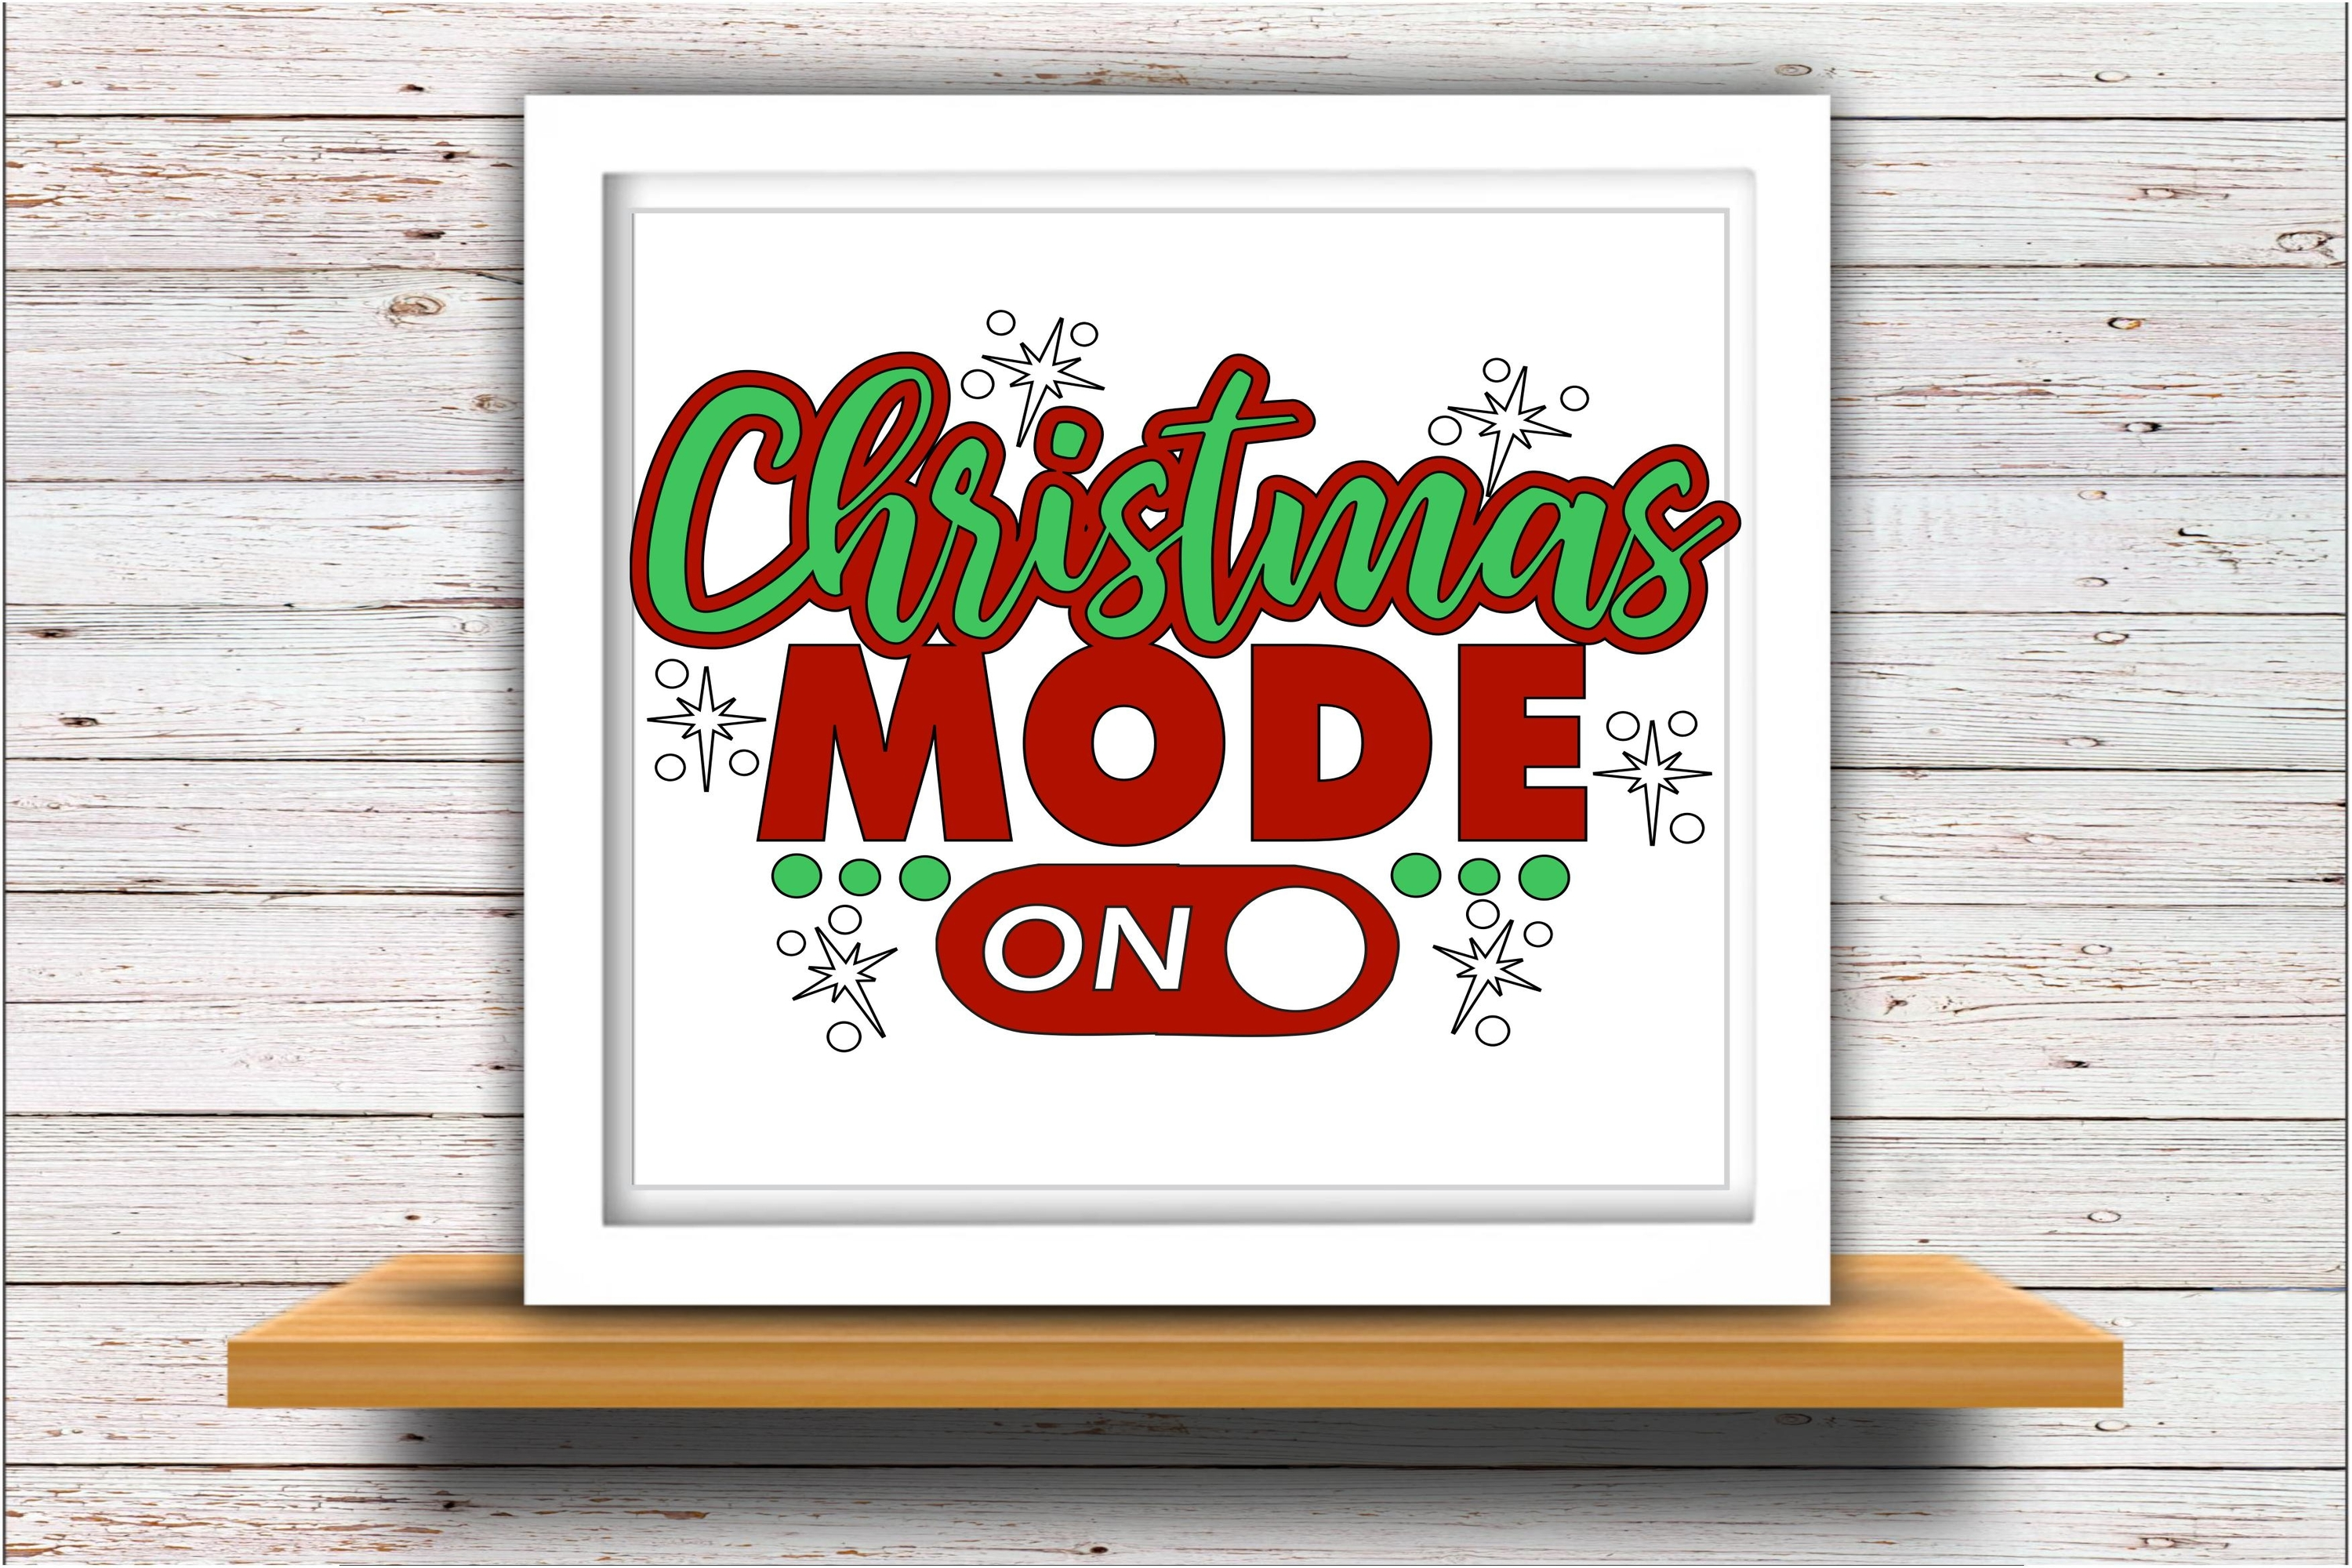 Christmas SVG DXF JPEG Silhouette Cameo Cricut Mode on svg example image 2